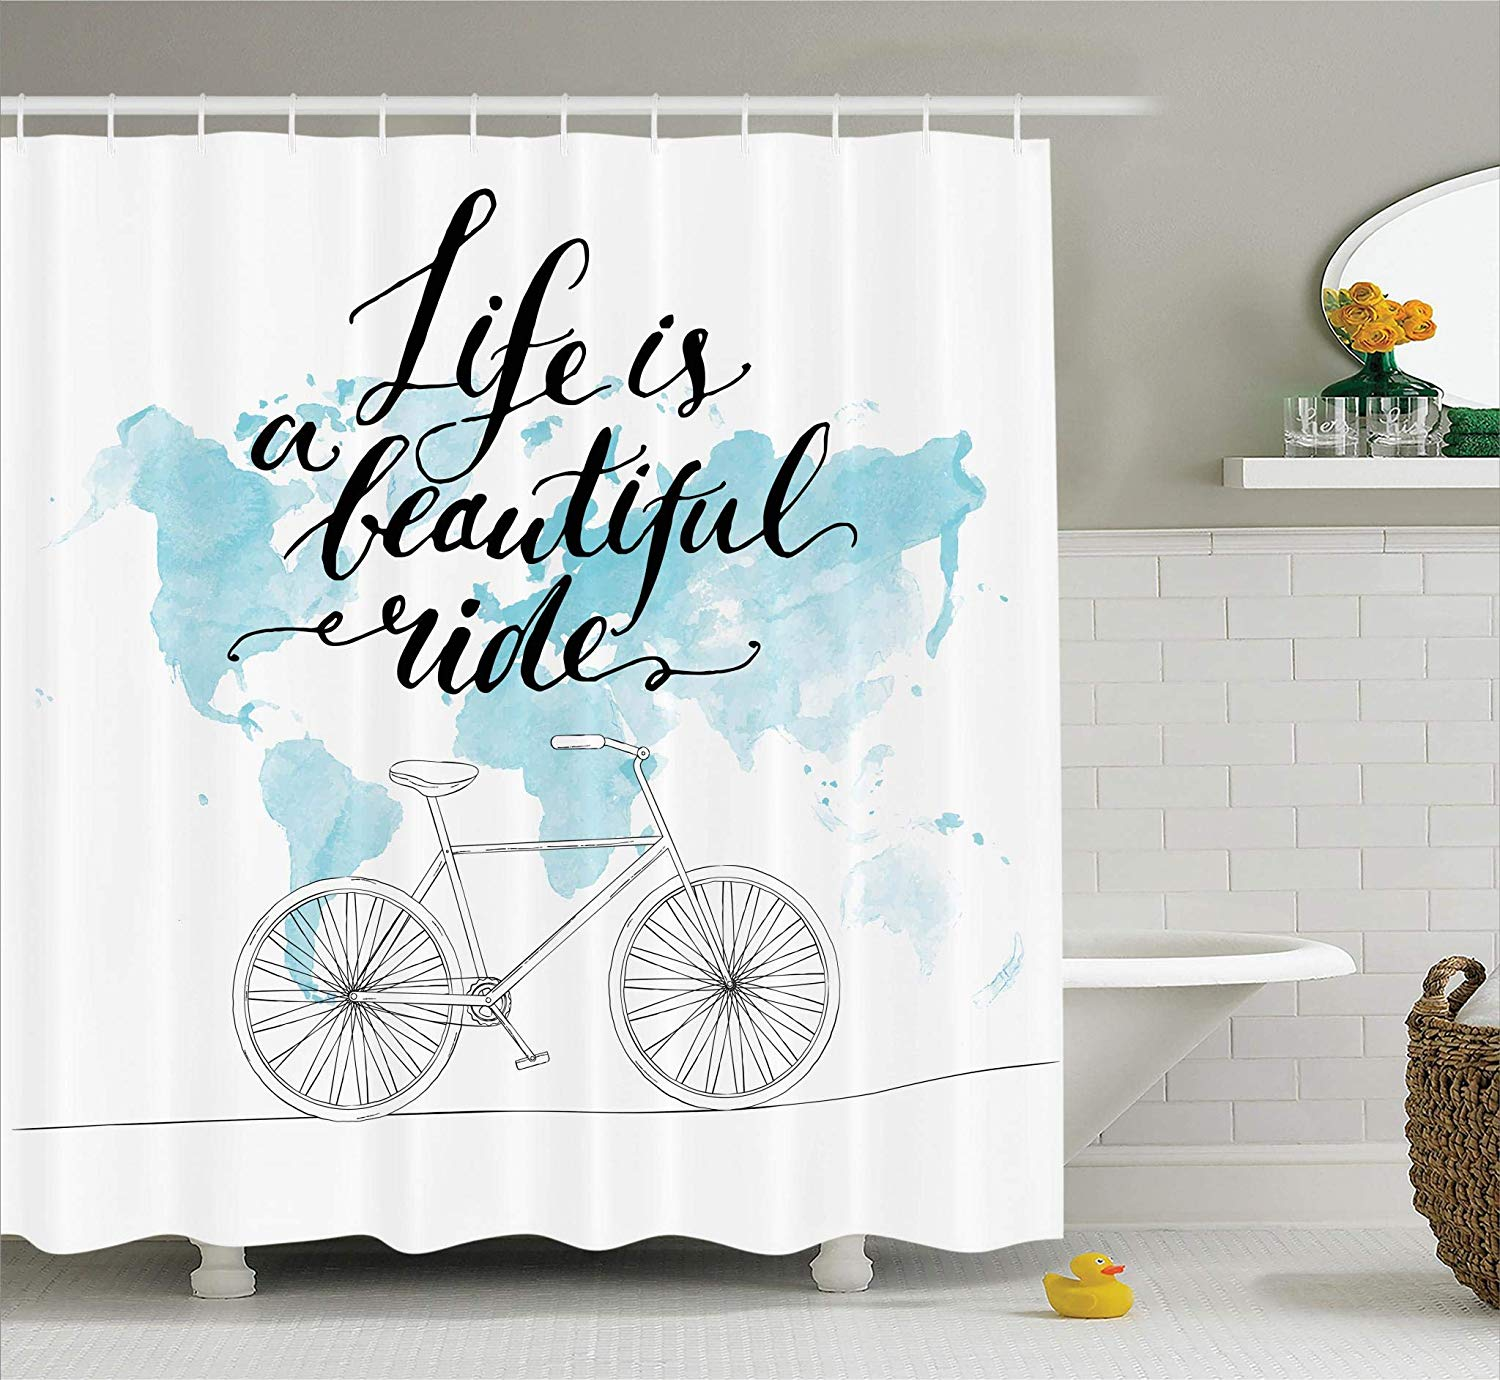 US $12.8 30% OFF|Bicycle Decor Collection Inspirational Cycling Picture  with World Map Polyester Fabric Bathroom Shower Curtain Set with Hooks-in  ...